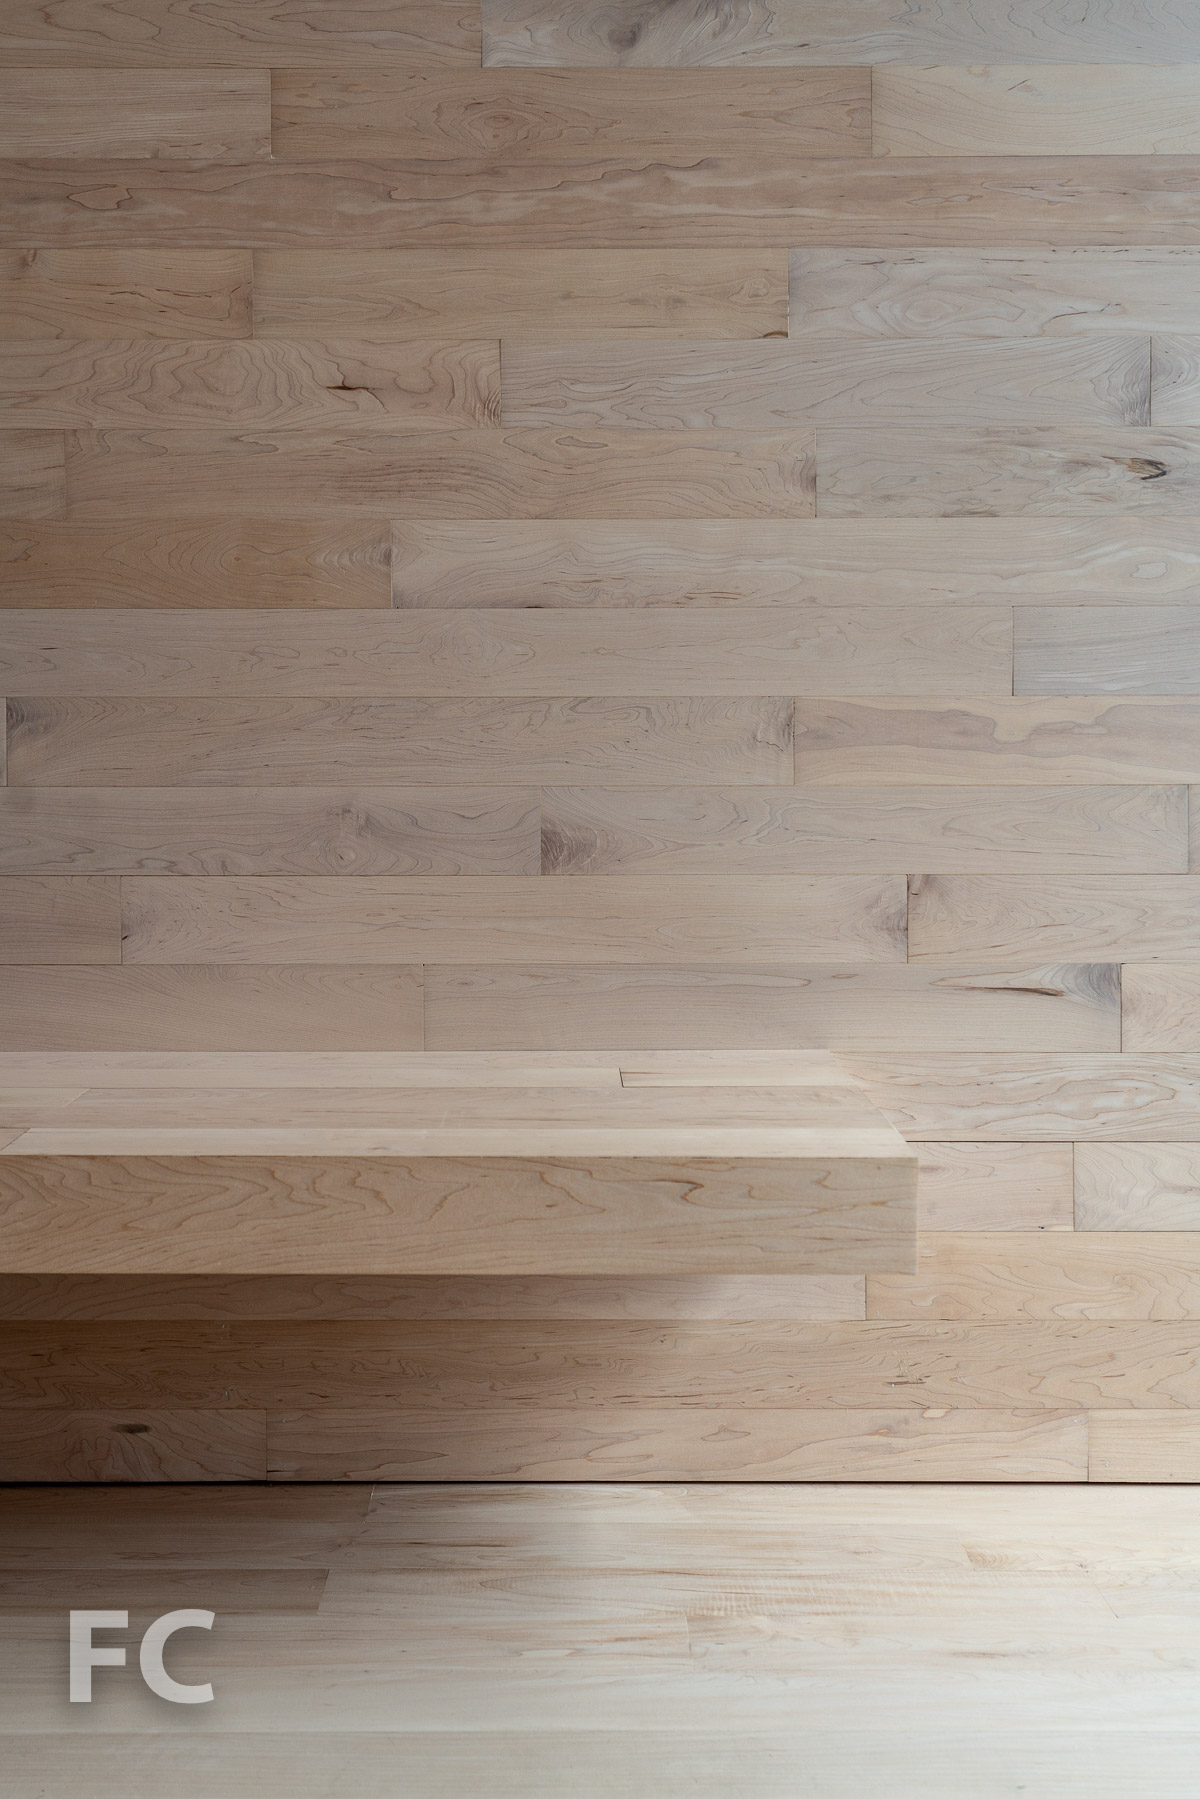 Detail of the maple wall, flooring, and bench.